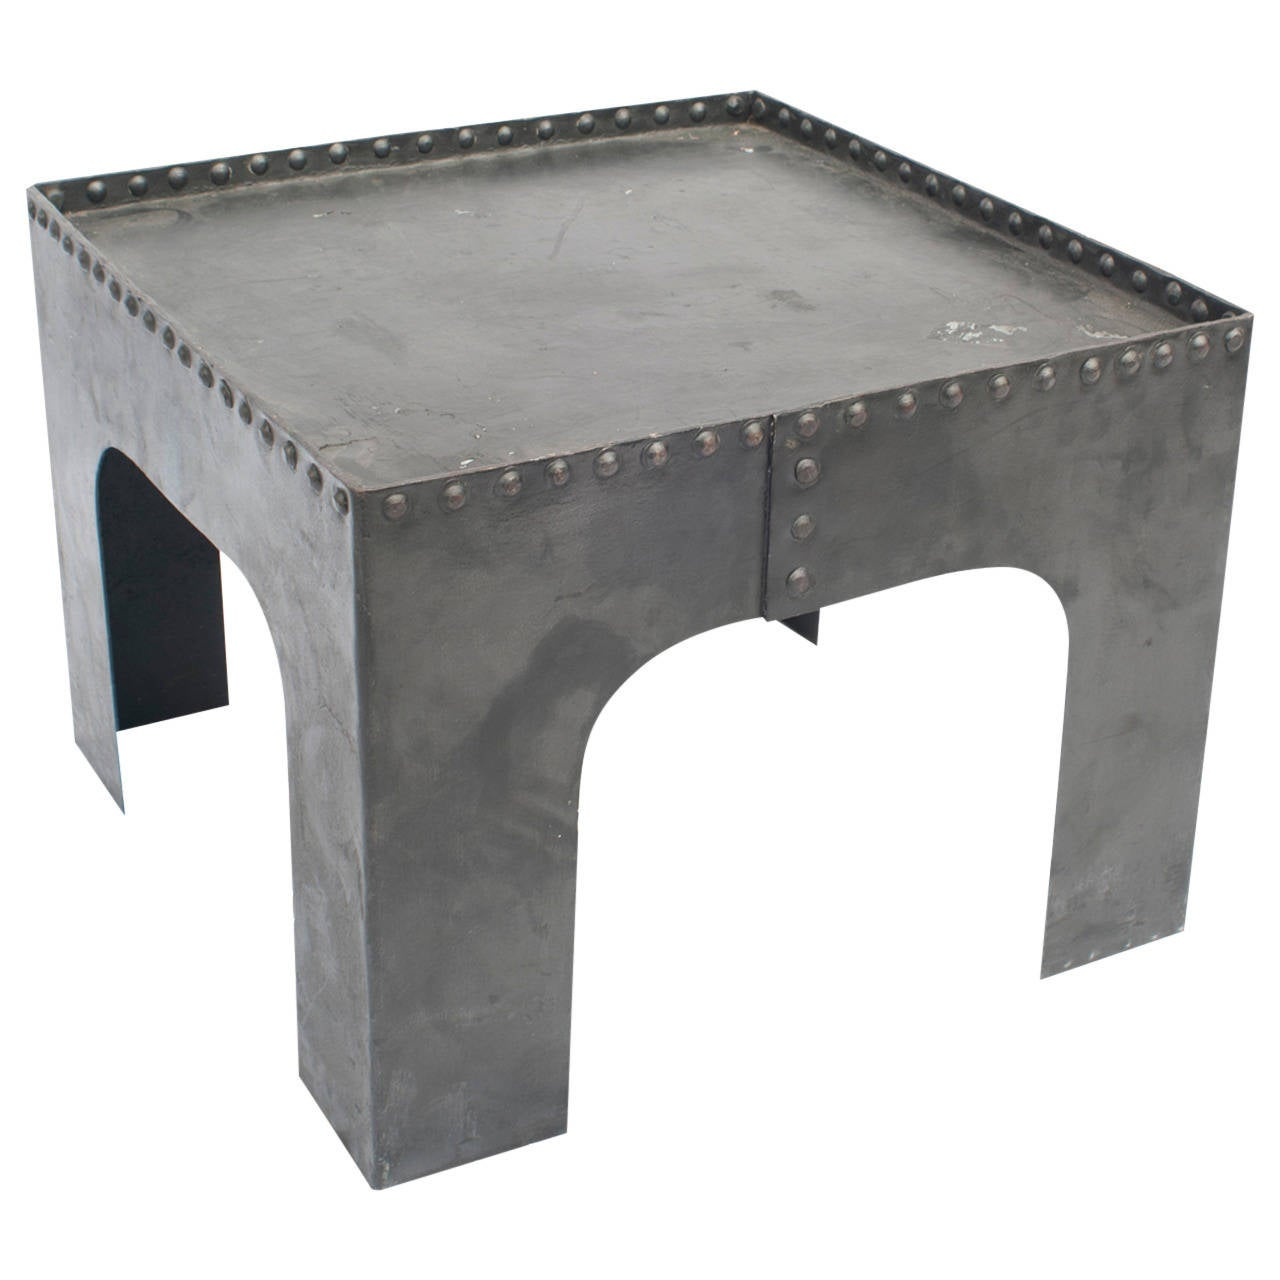 Small square industrial metal coffee table for sale at 1stdibs Industrial metal coffee table